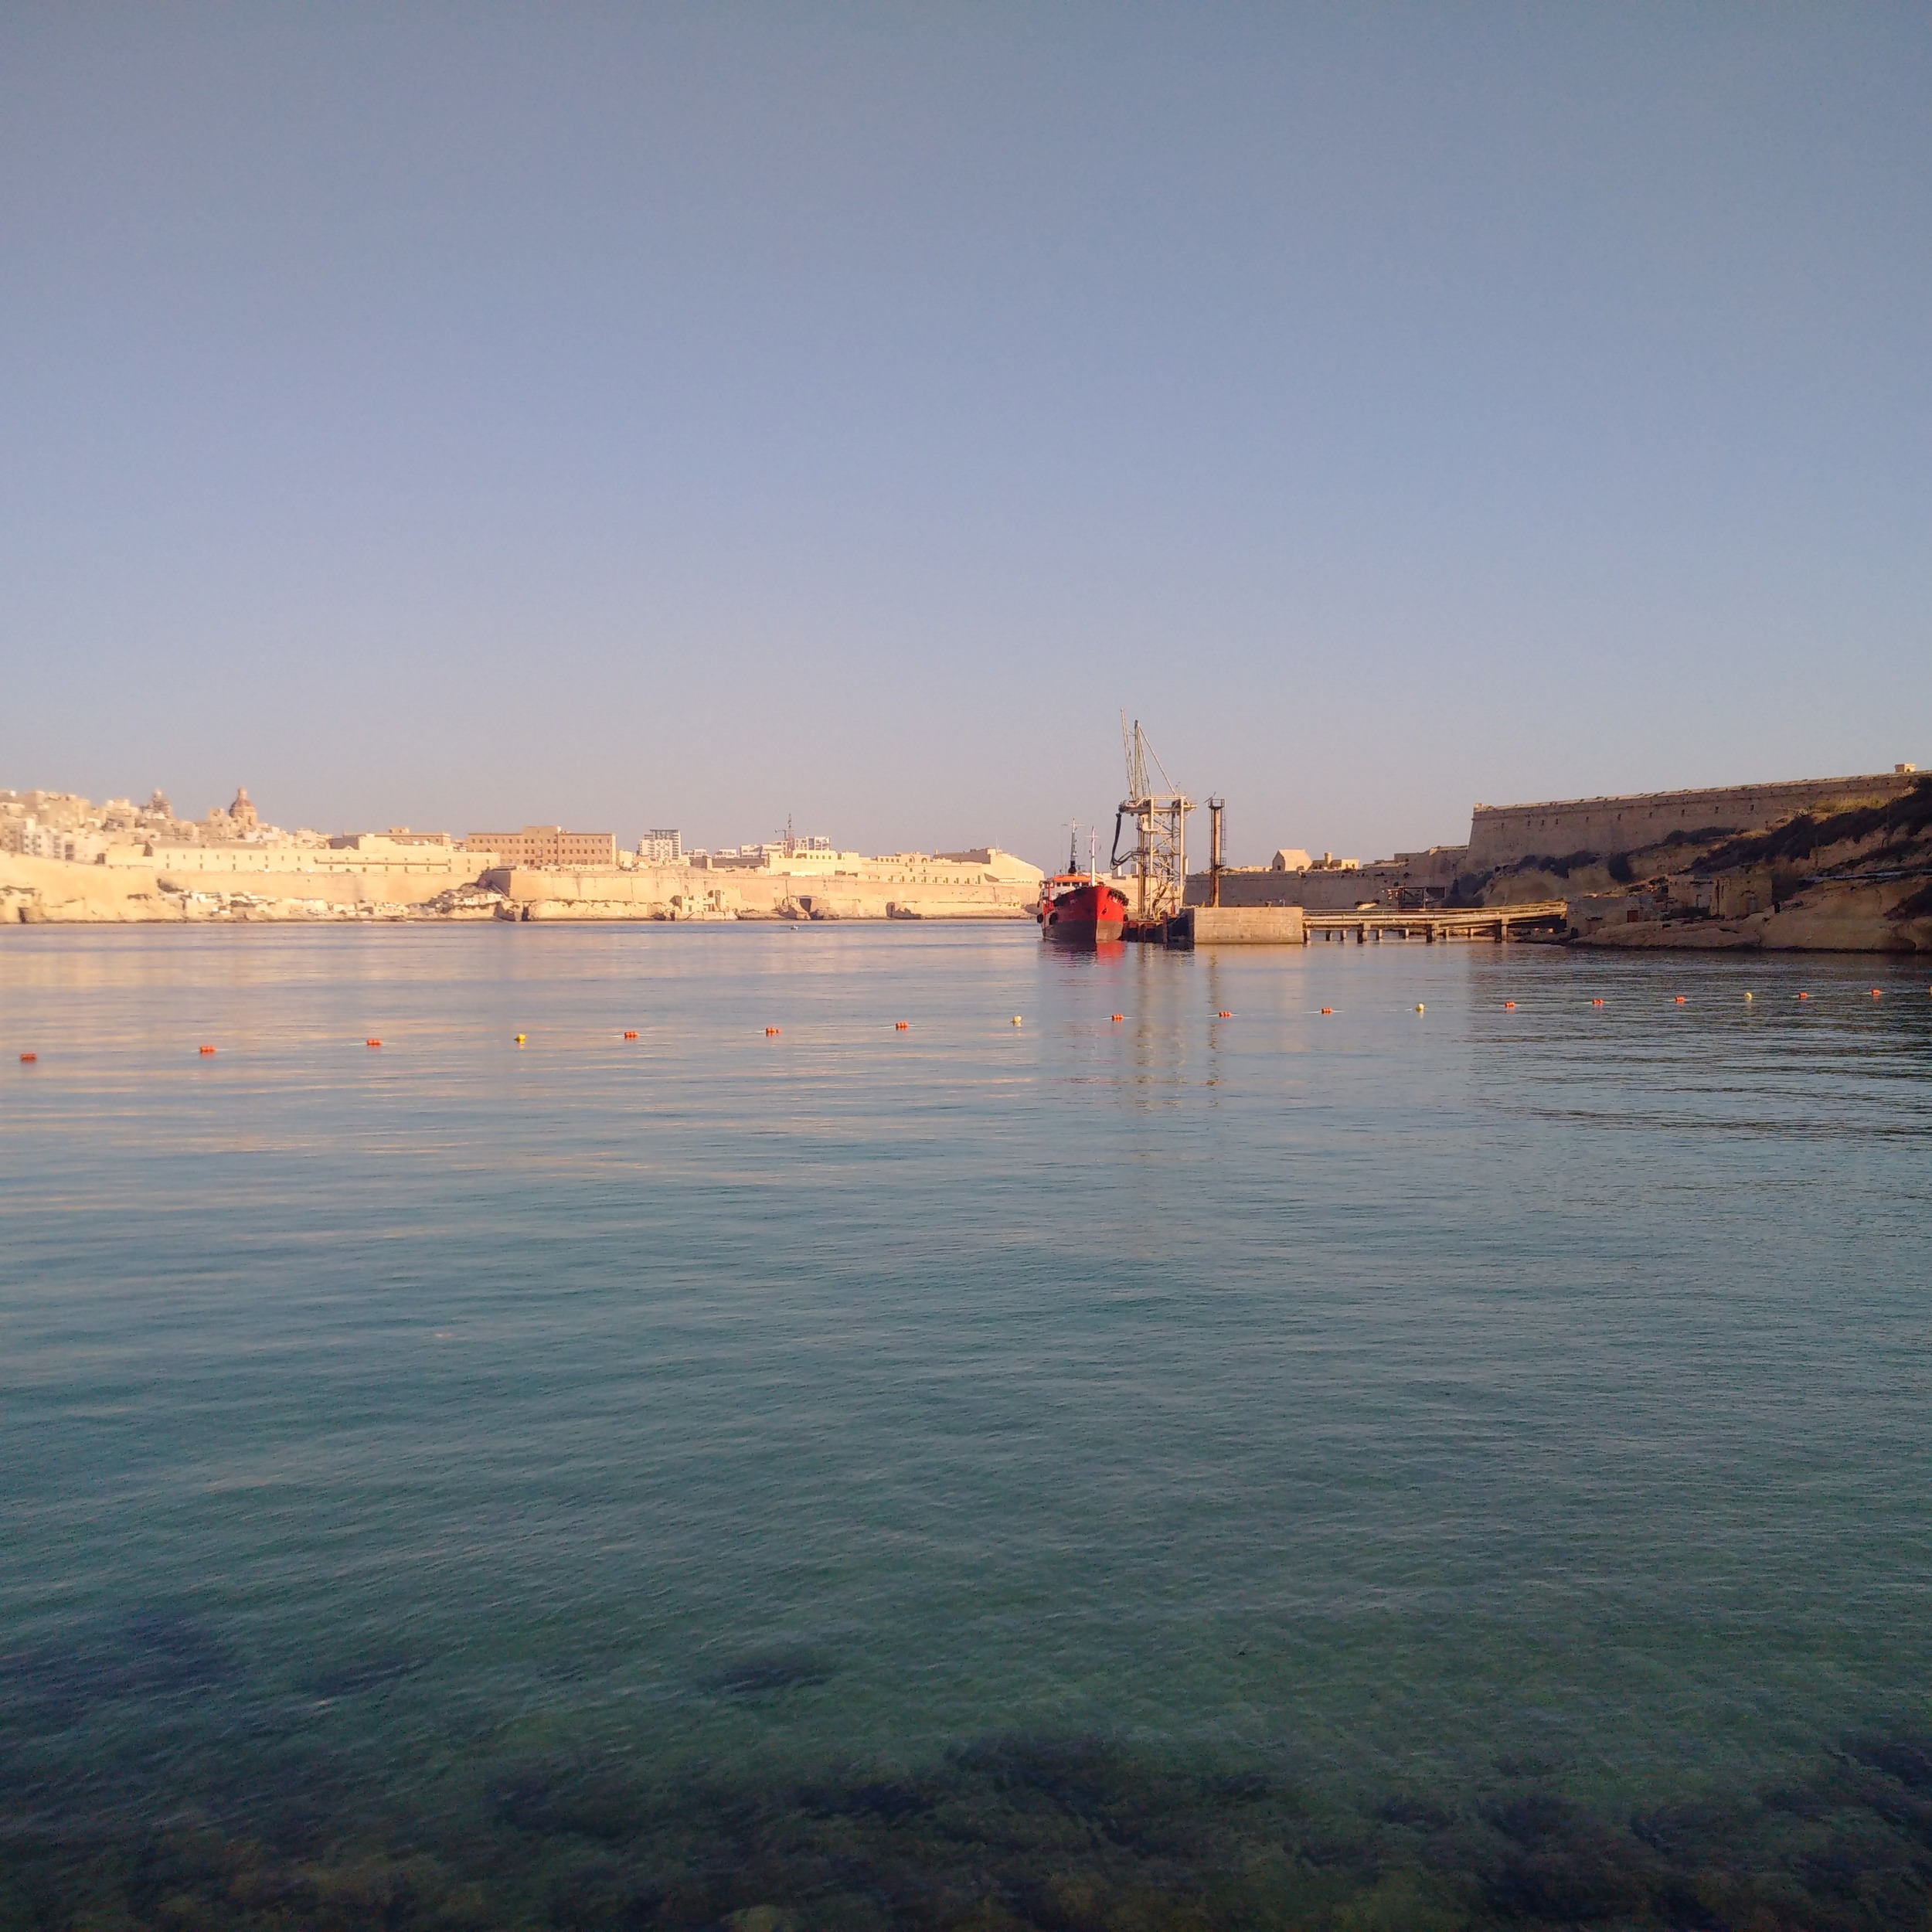 Rinella Bay (Malta) on an early morning in June 2016